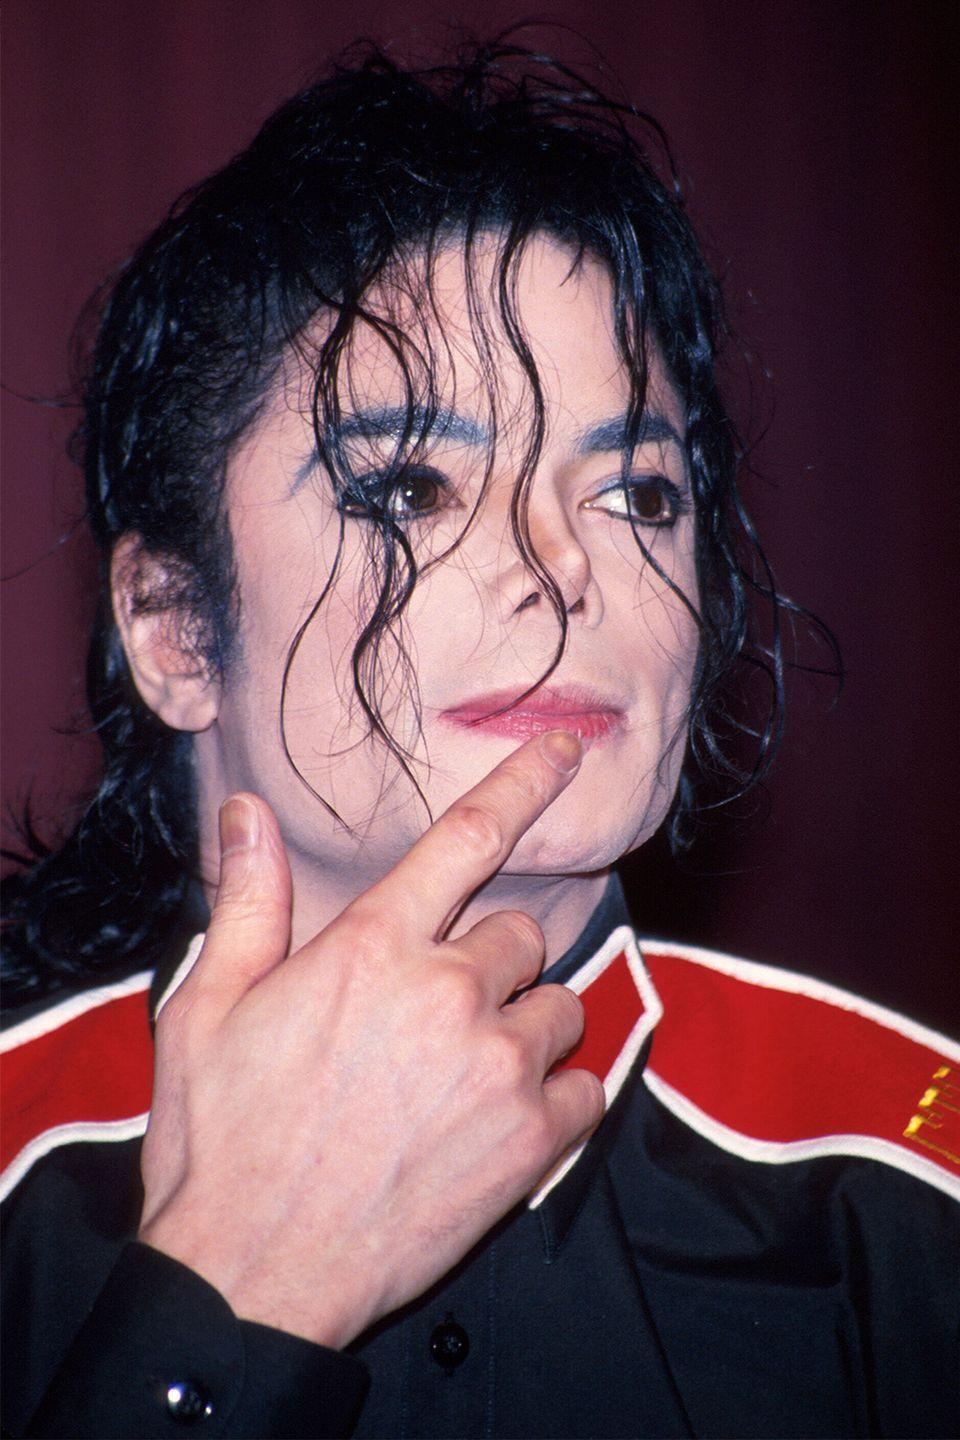 """<p>A documentary about Jackson's life was made and released 10 years after charges of child sexual abuse were filed against him—and in it, the singer made quite <a href=""""https://www.youtube.com/watch?v=8e1pdtRY0P0"""" rel=""""nofollow noopener"""" target=""""_blank"""" data-ylk=""""slk:a few inappropriate comments"""" class=""""link rapid-noclick-resp"""">a few inappropriate comments</a>. When talking about his own children, Jackson said he allows their friends to come over and sleep in his bed, and that he sees no problem with it because, """"it's all very charming."""" The interviewer seems baffled that Jackson would say these things considering the allegations that were brought against him.</p>"""